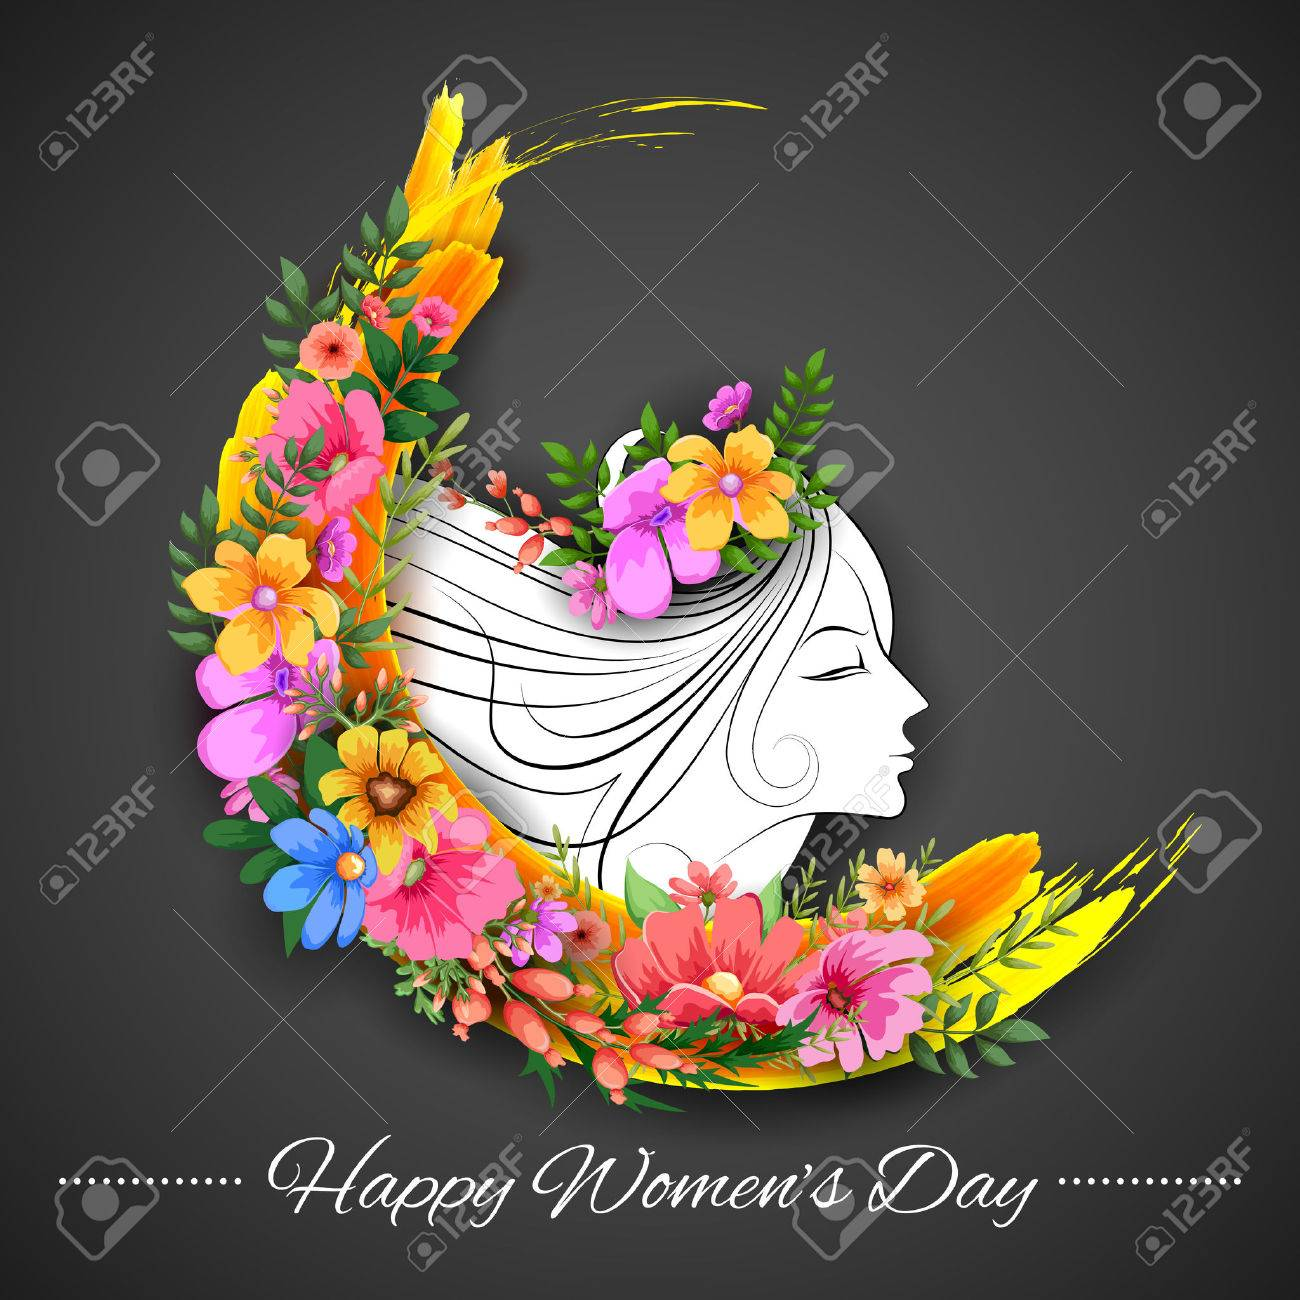 Illustration of happy womens day greetings background royalty free illustration of happy womens day greetings background stock vector 53411934 kristyandbryce Gallery